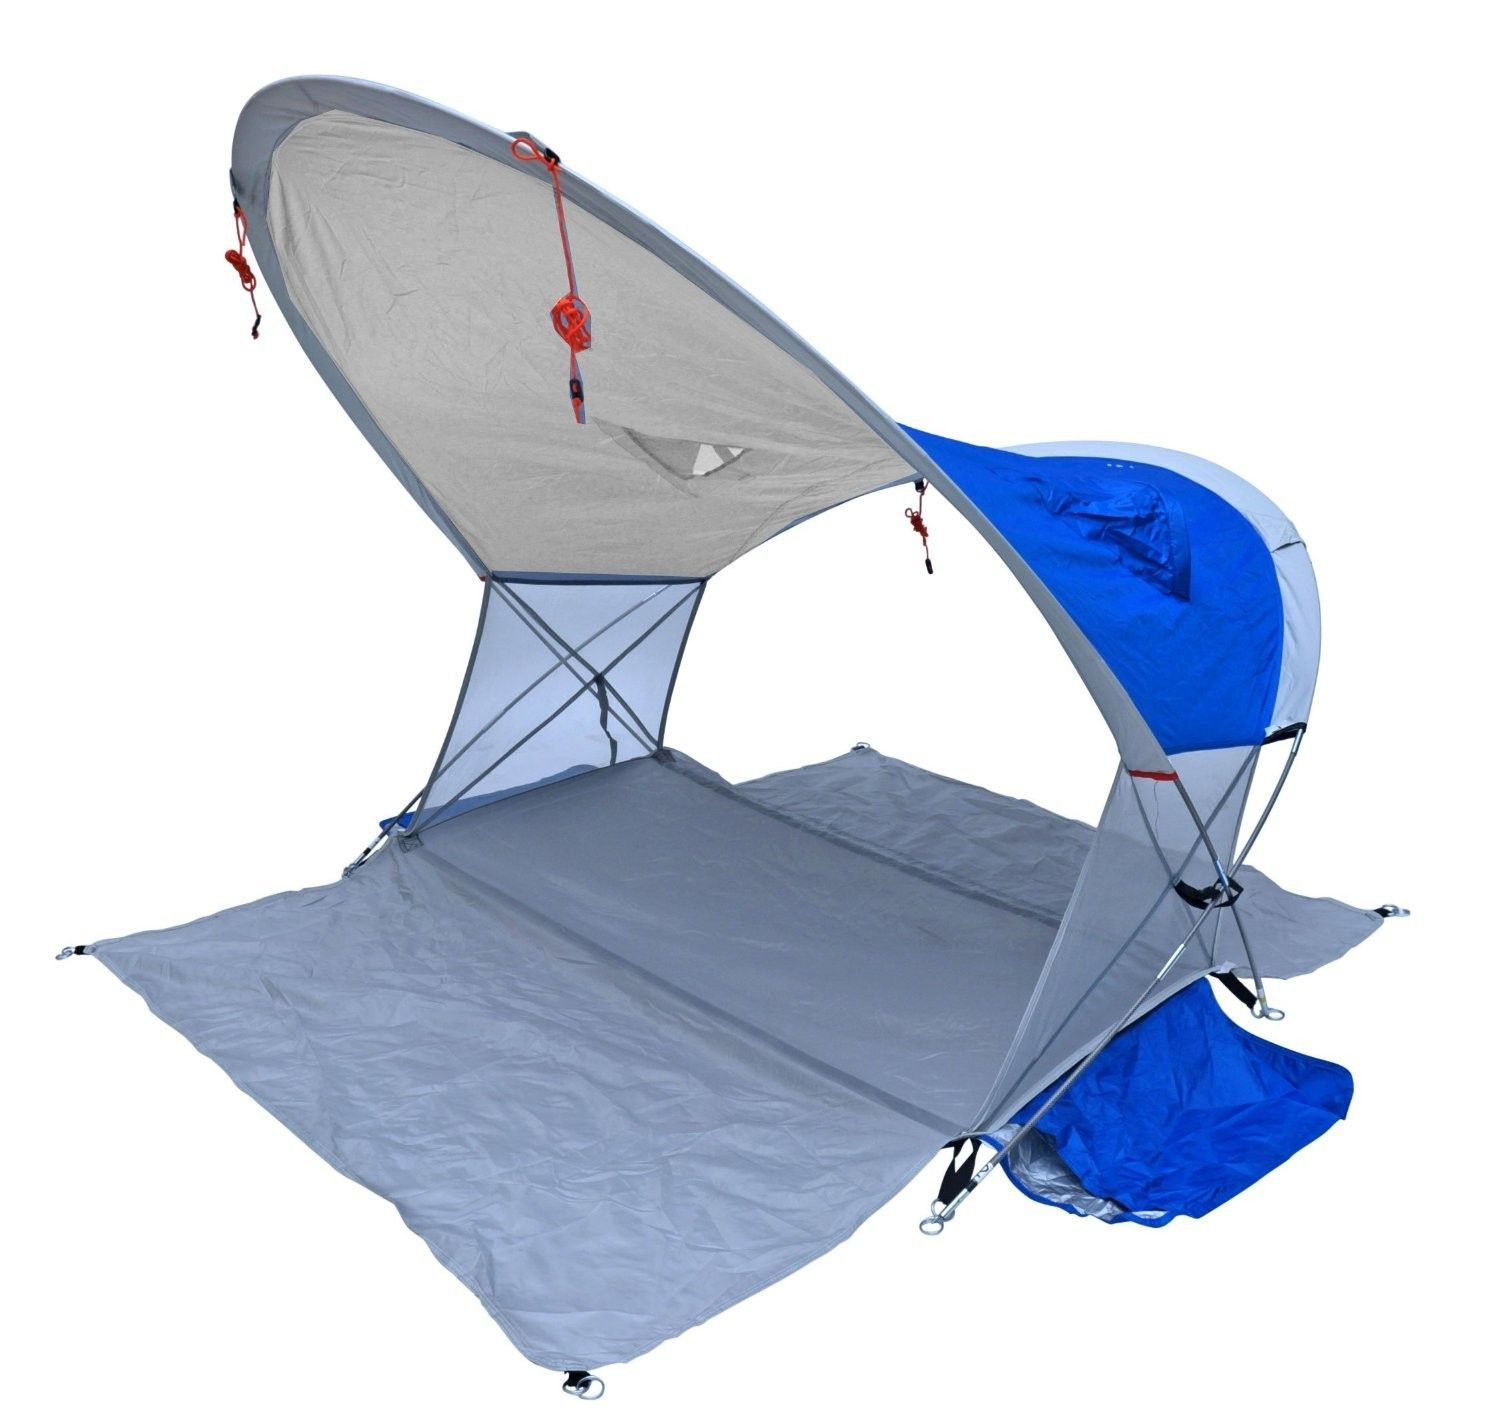 Deluxe 360 View Aerodynamic 2 Person Tent with Carry Bag  sc 1 st  Pinterest & Deluxe 360 View Aerodynamic 2 Person Tent with Carry Bag ...